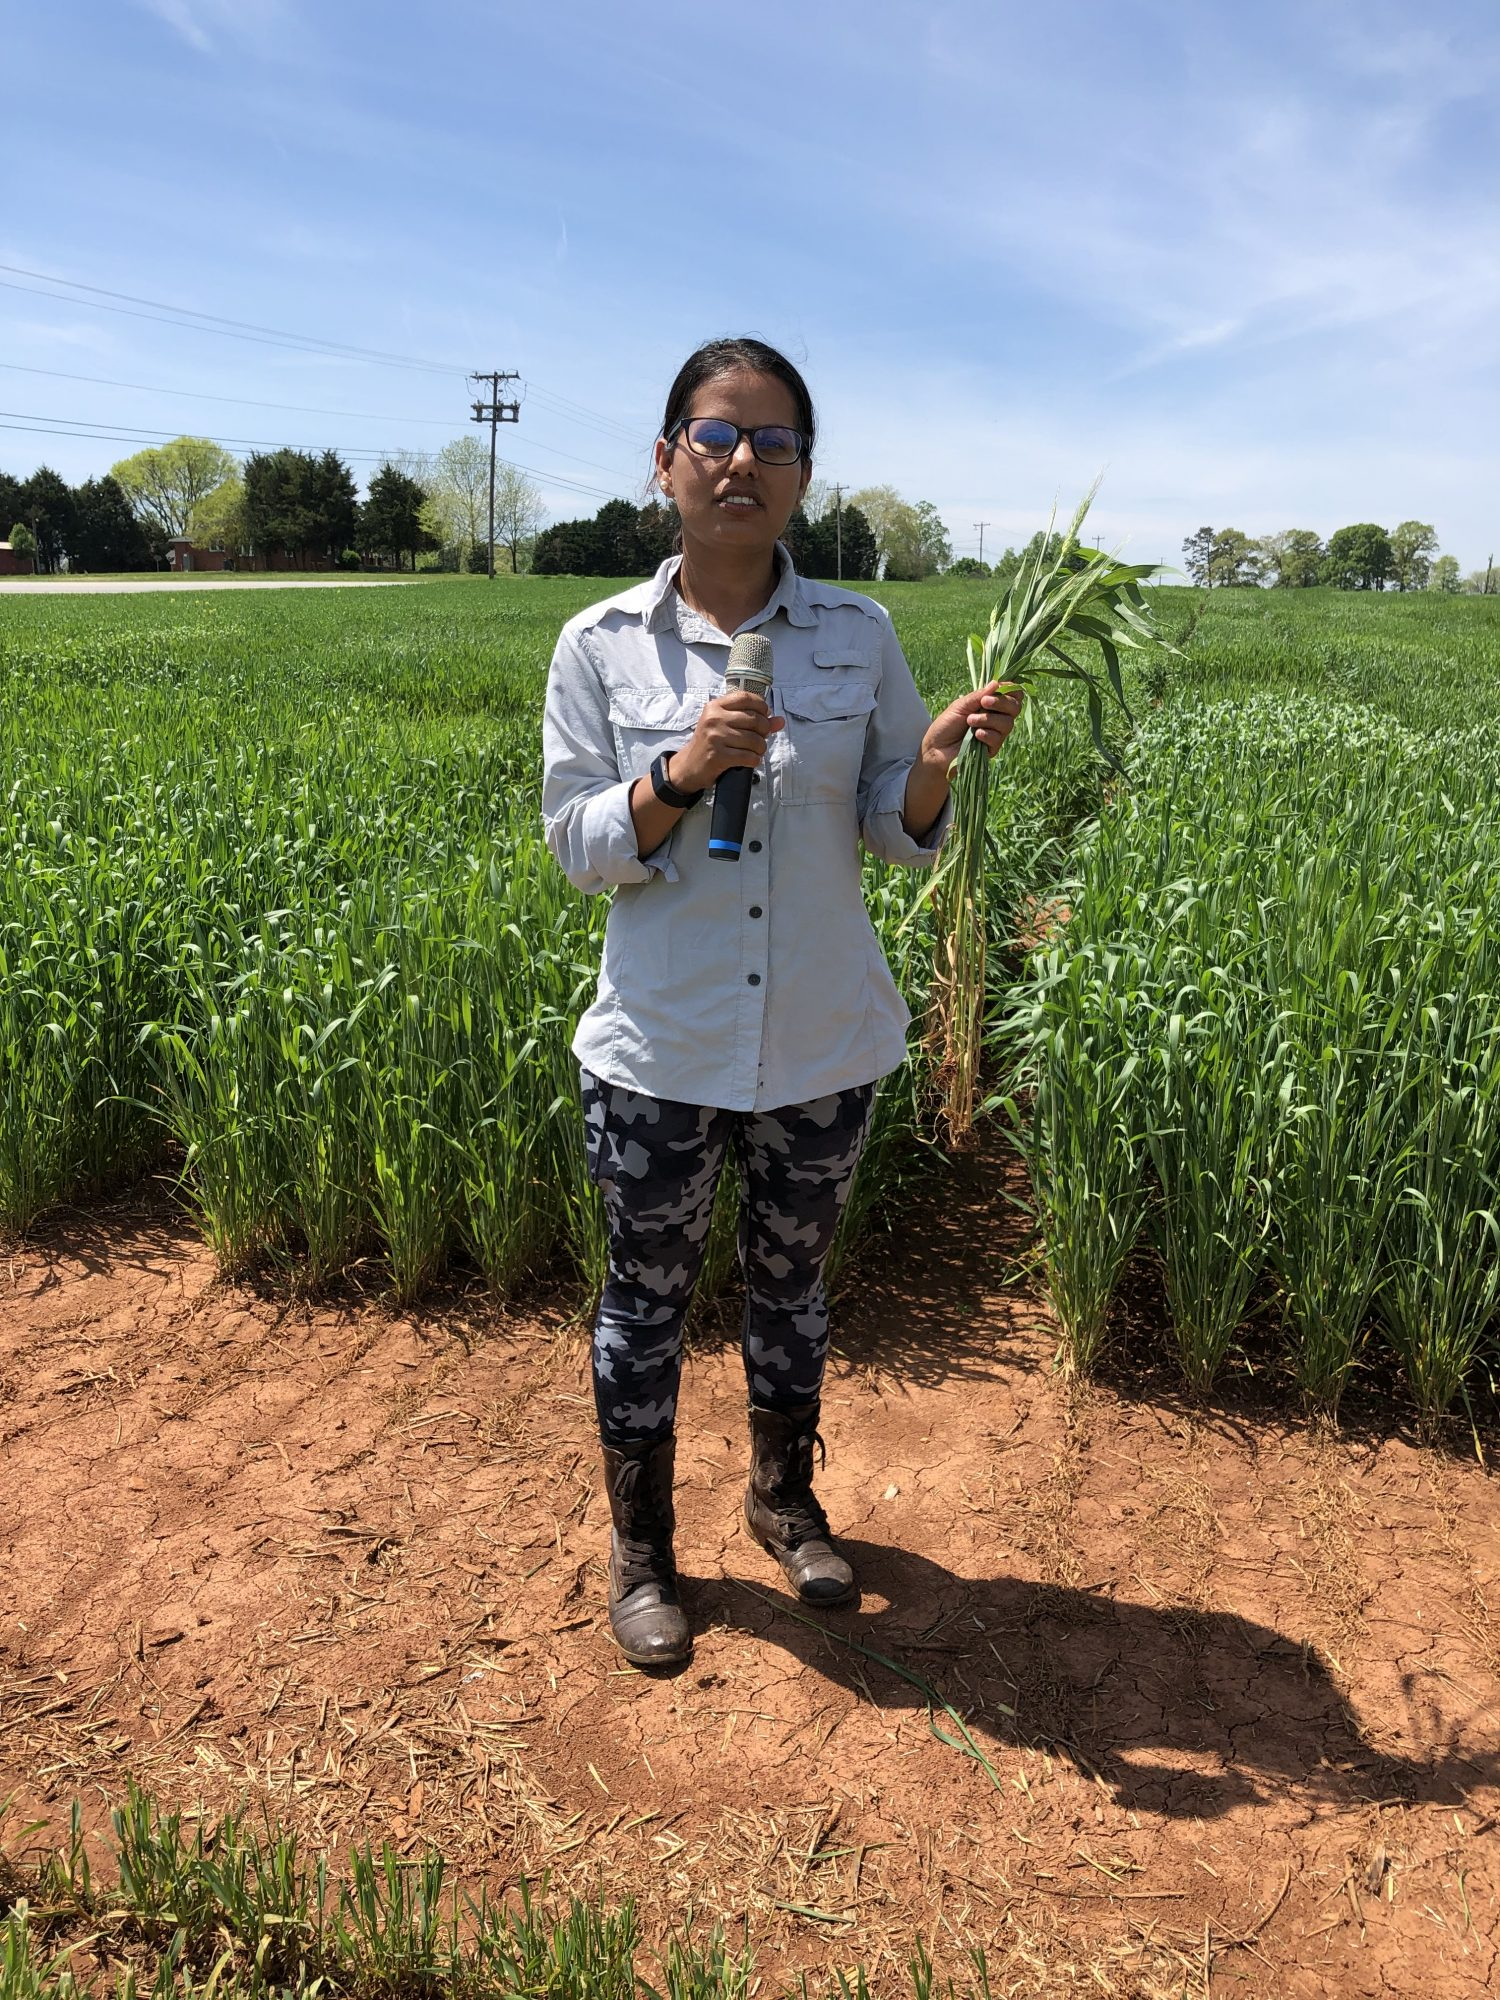 Urmilla is standing near the wheat and barley research plots of Dave Marshall.